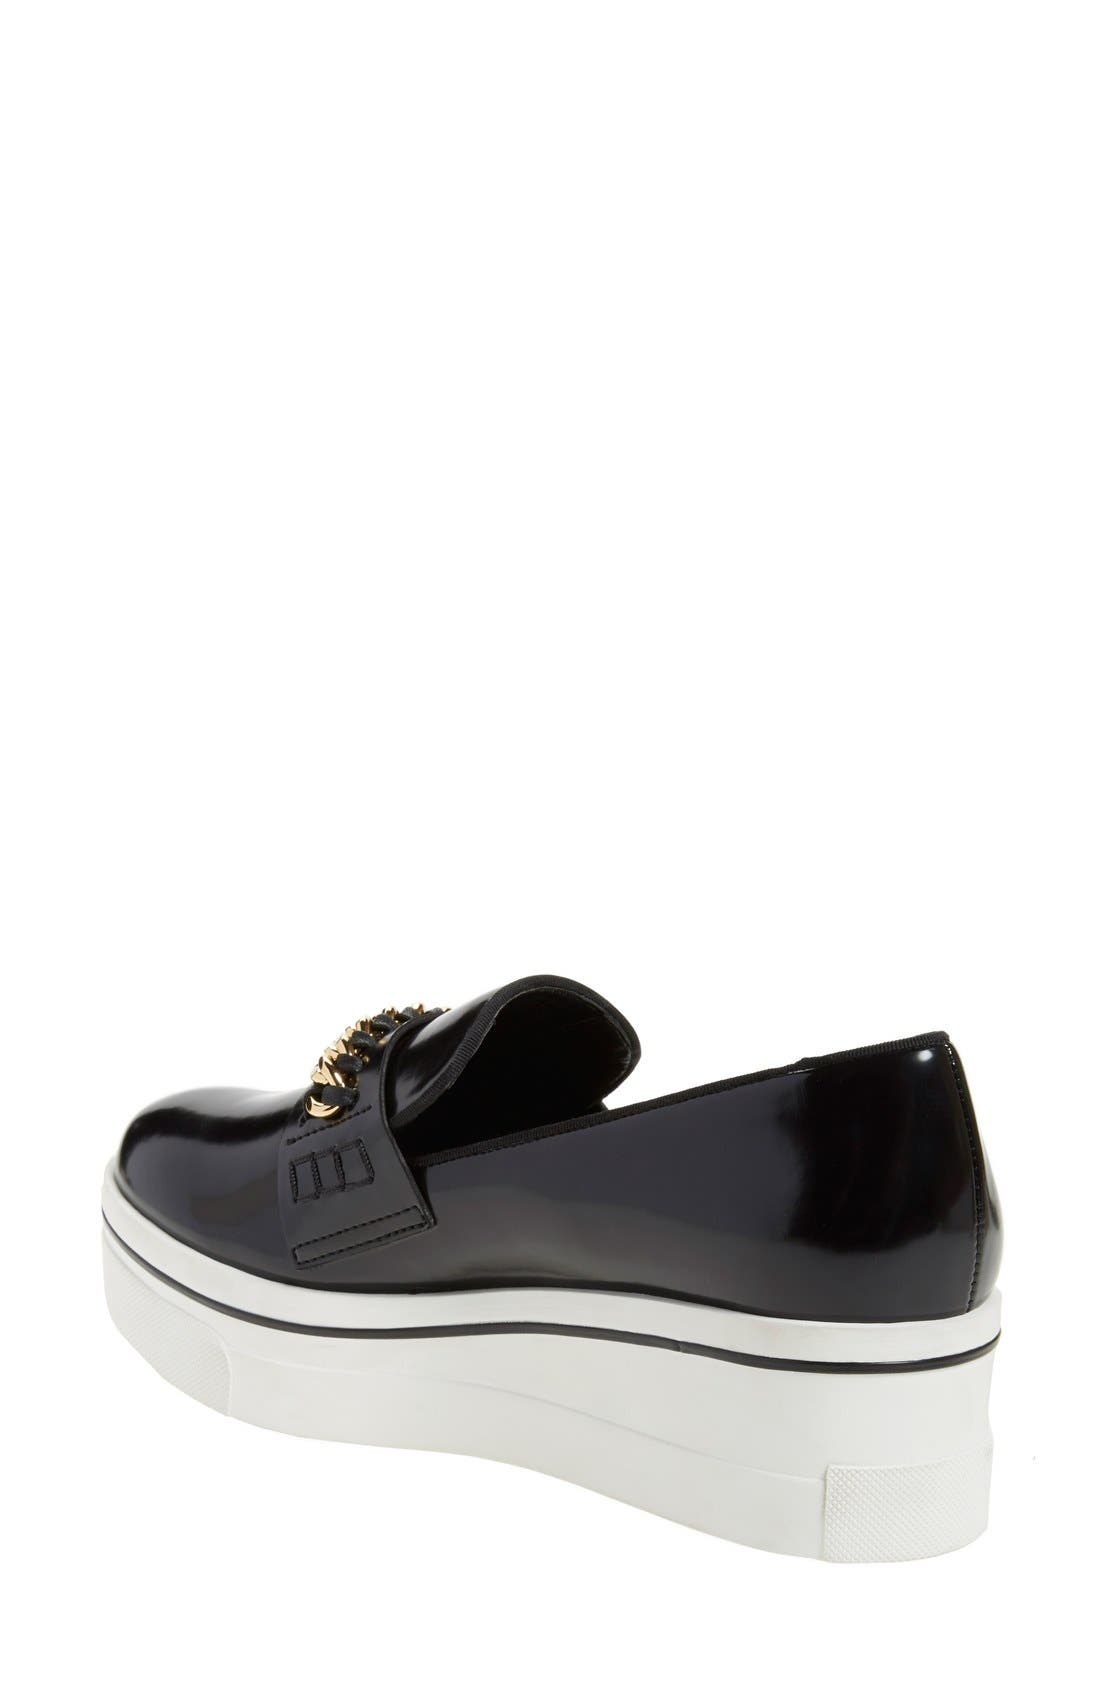 'Binx' Slip-On Platform Sneaker,                             Alternate thumbnail 2, color,                             Black